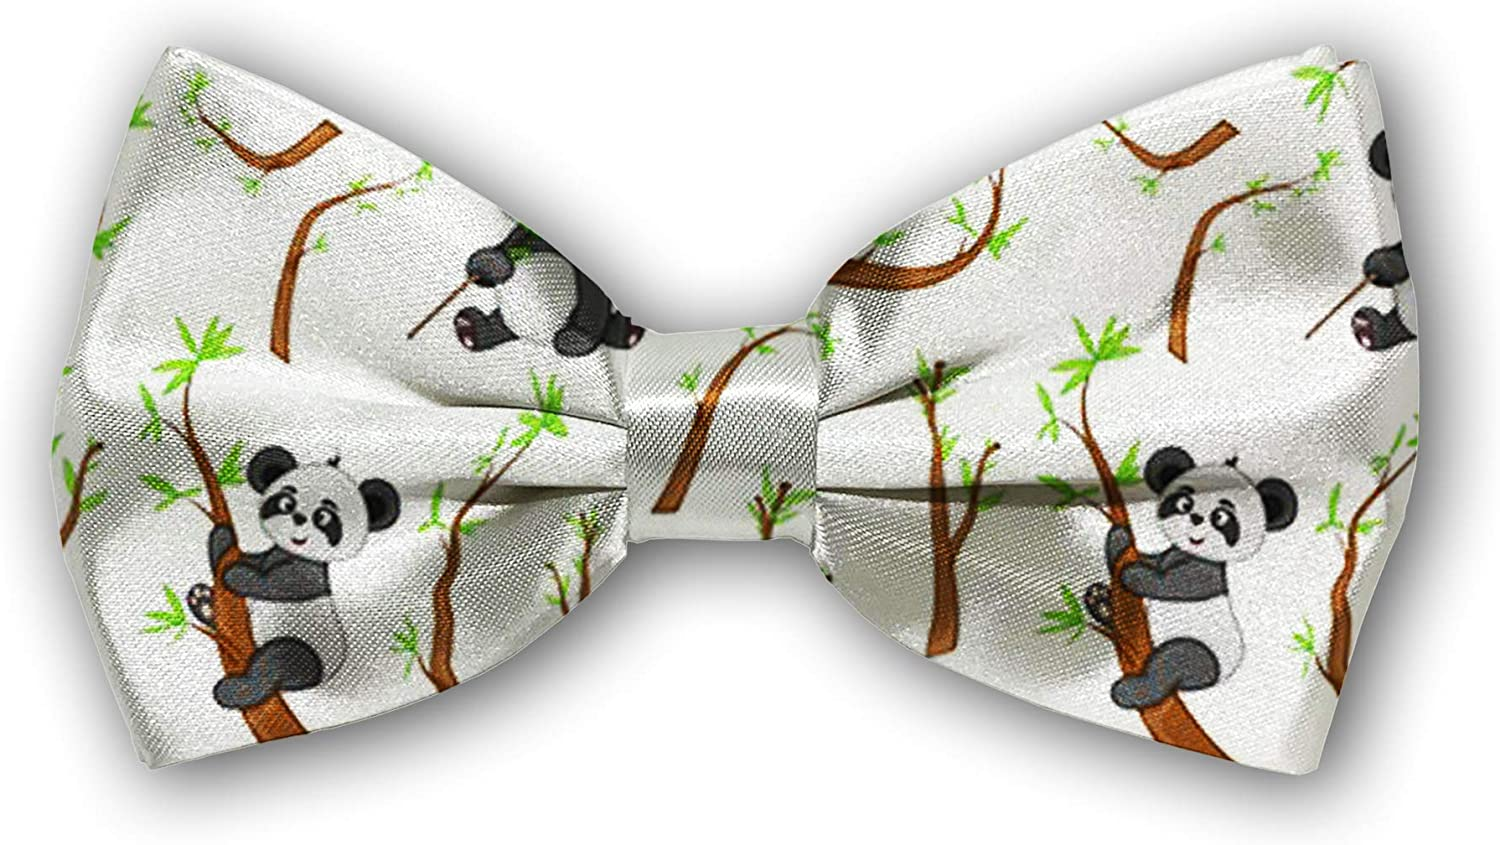 Bow Tie Tuxedo Max 42% OFF Butterfly Cotton Mens for Adjustable 5% OFF Boys Bowtie